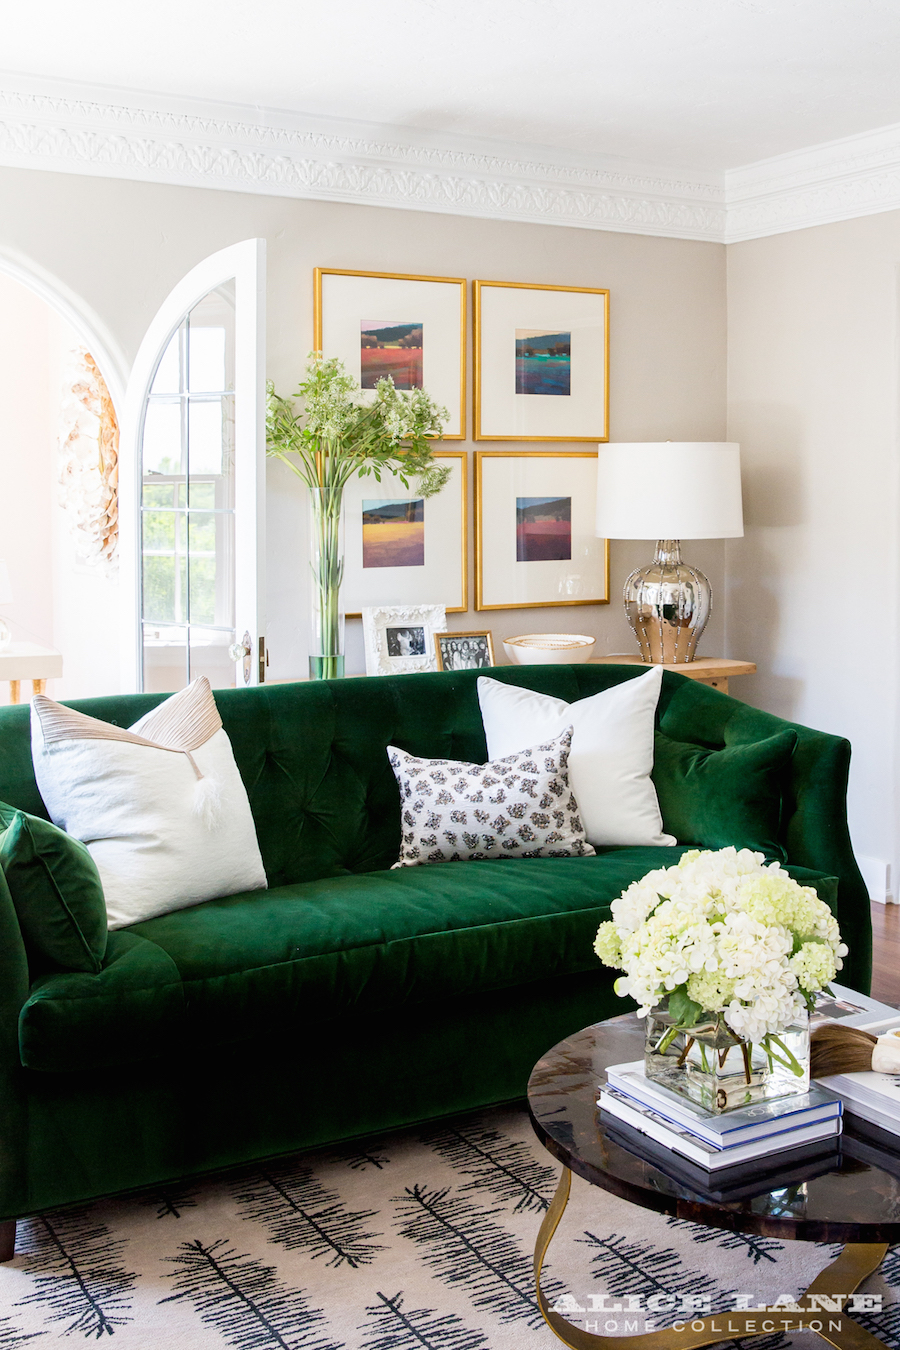 Living Room Design Green: 30+ Lush Green Velvet Sofas In Cozy Living Rooms